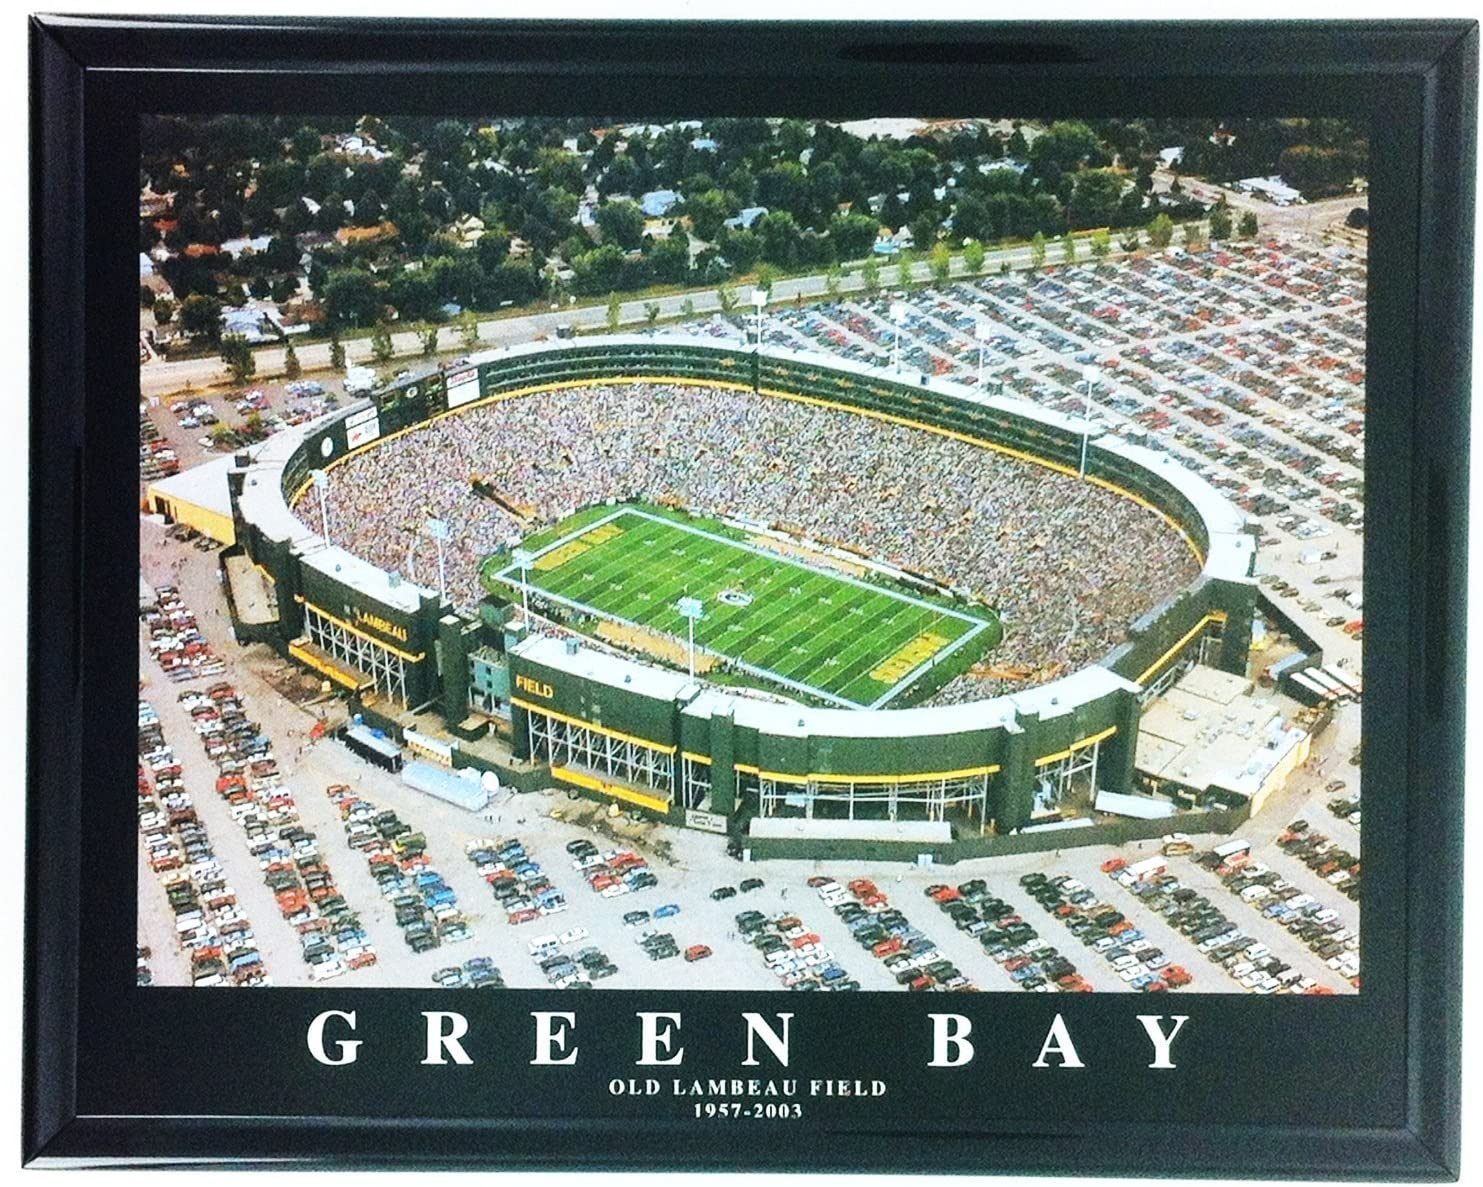 Amazon Com Old Lambeau Field Football Green Bay Packers Framed Print Wall Art F7546a Posters Prints